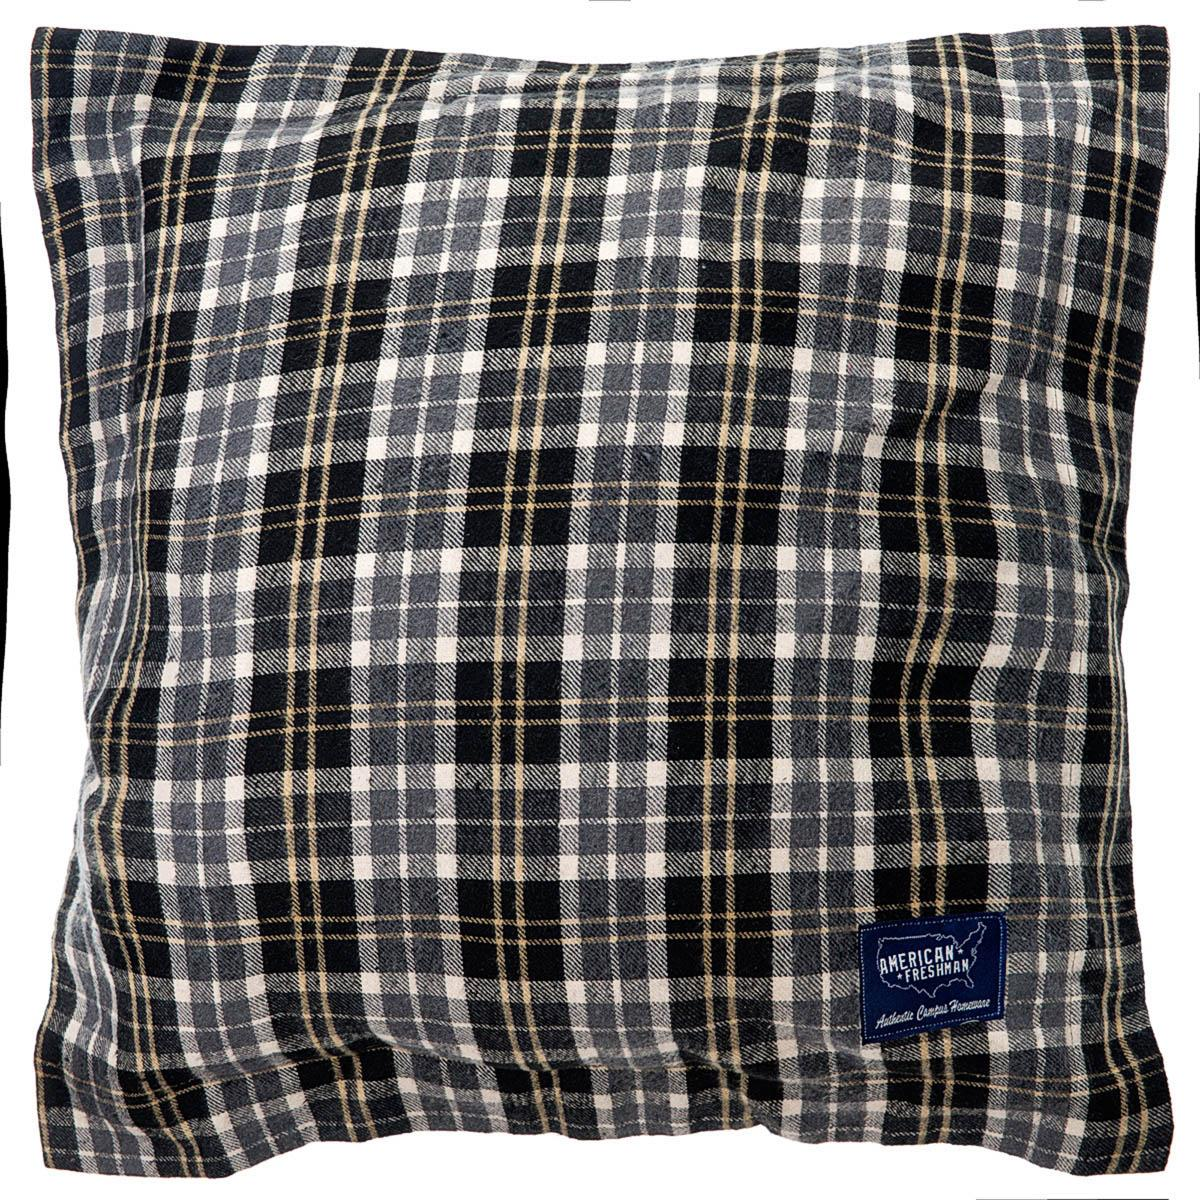 Ashley Wilde Cushions And Throws  Seattle Filled Square Cushion Charcoal